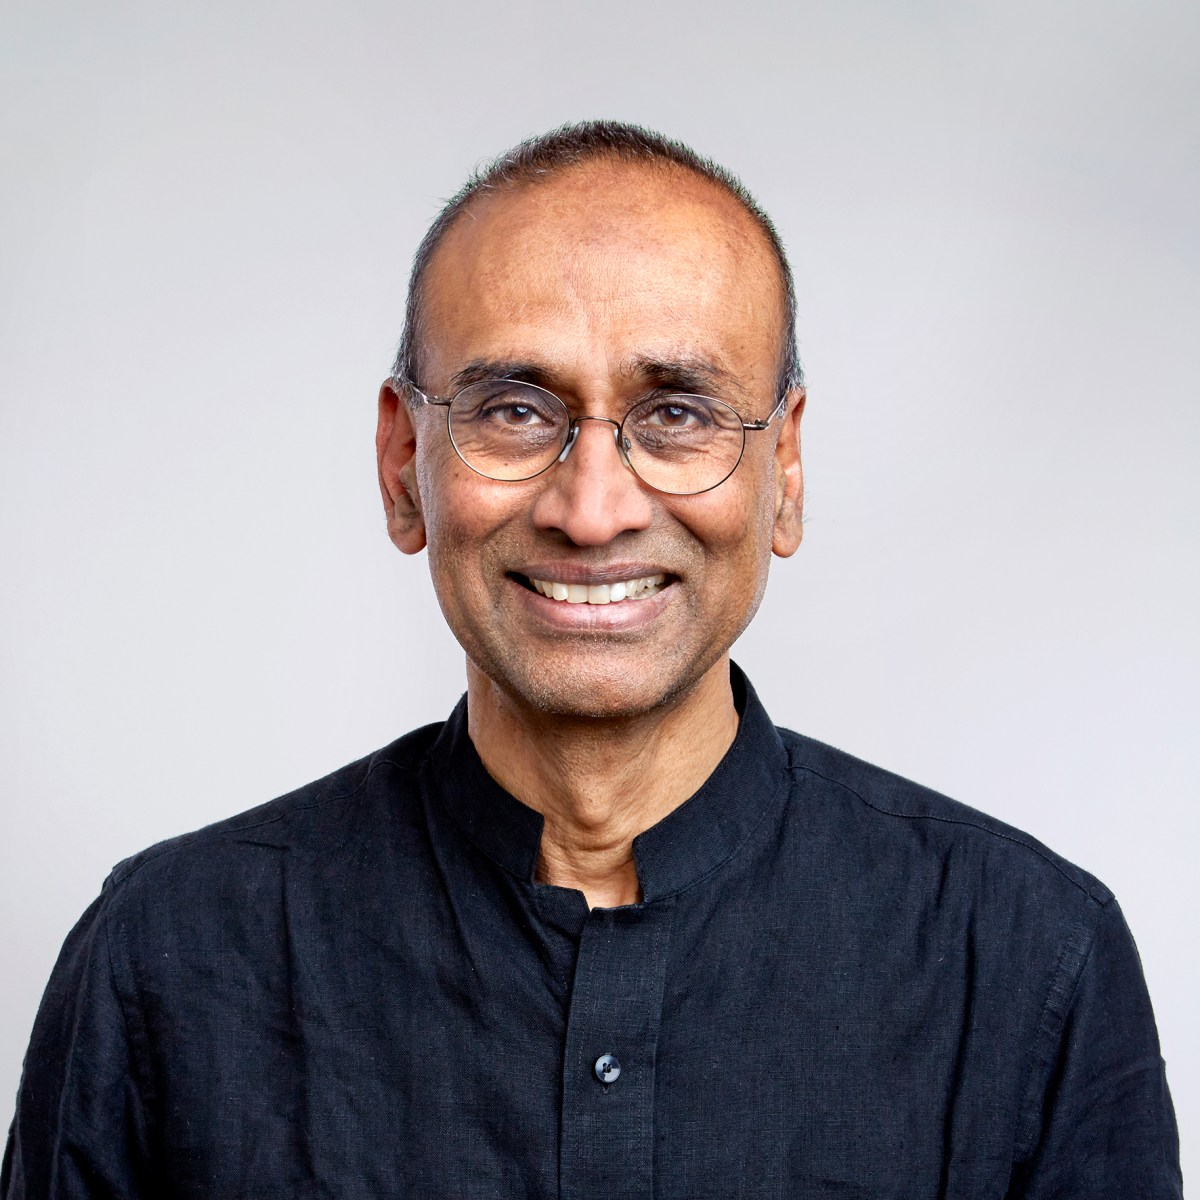 Venki Ramakrishnan, Fellow of Trinity College, Nobel Prize 2009, President of the Royal Society